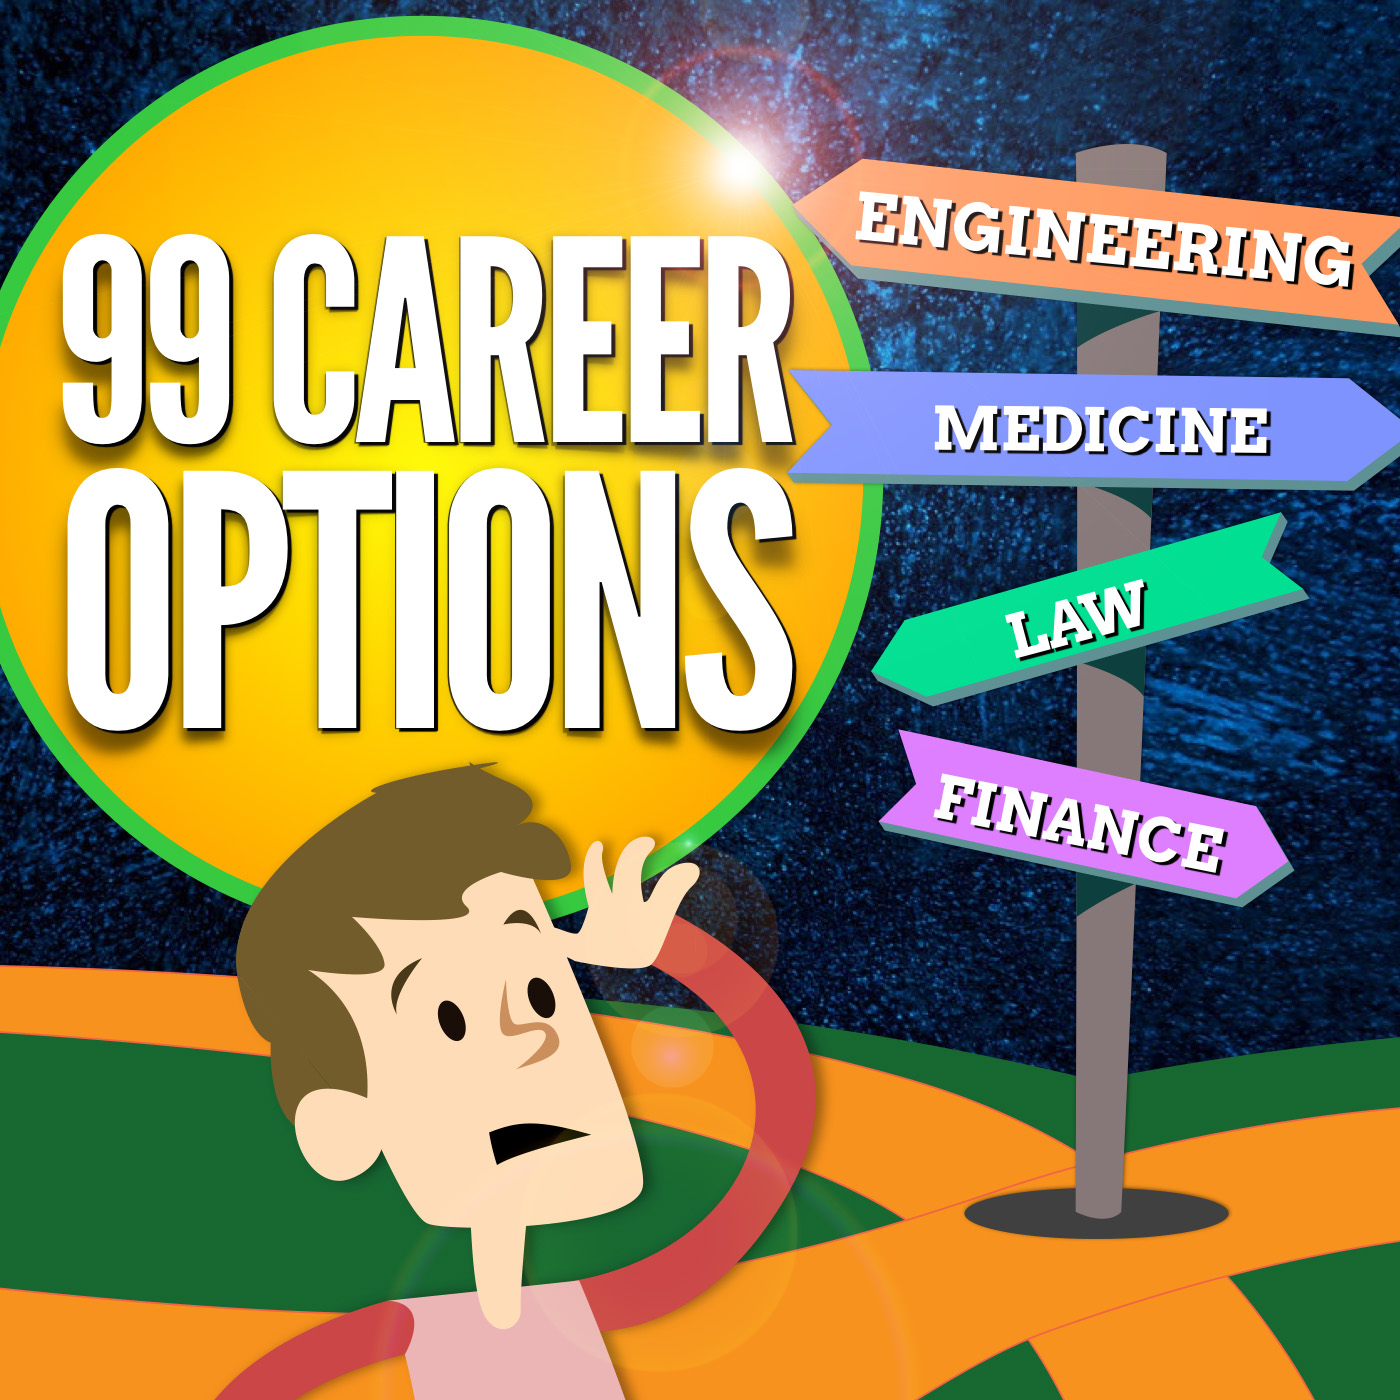 99 Career Options